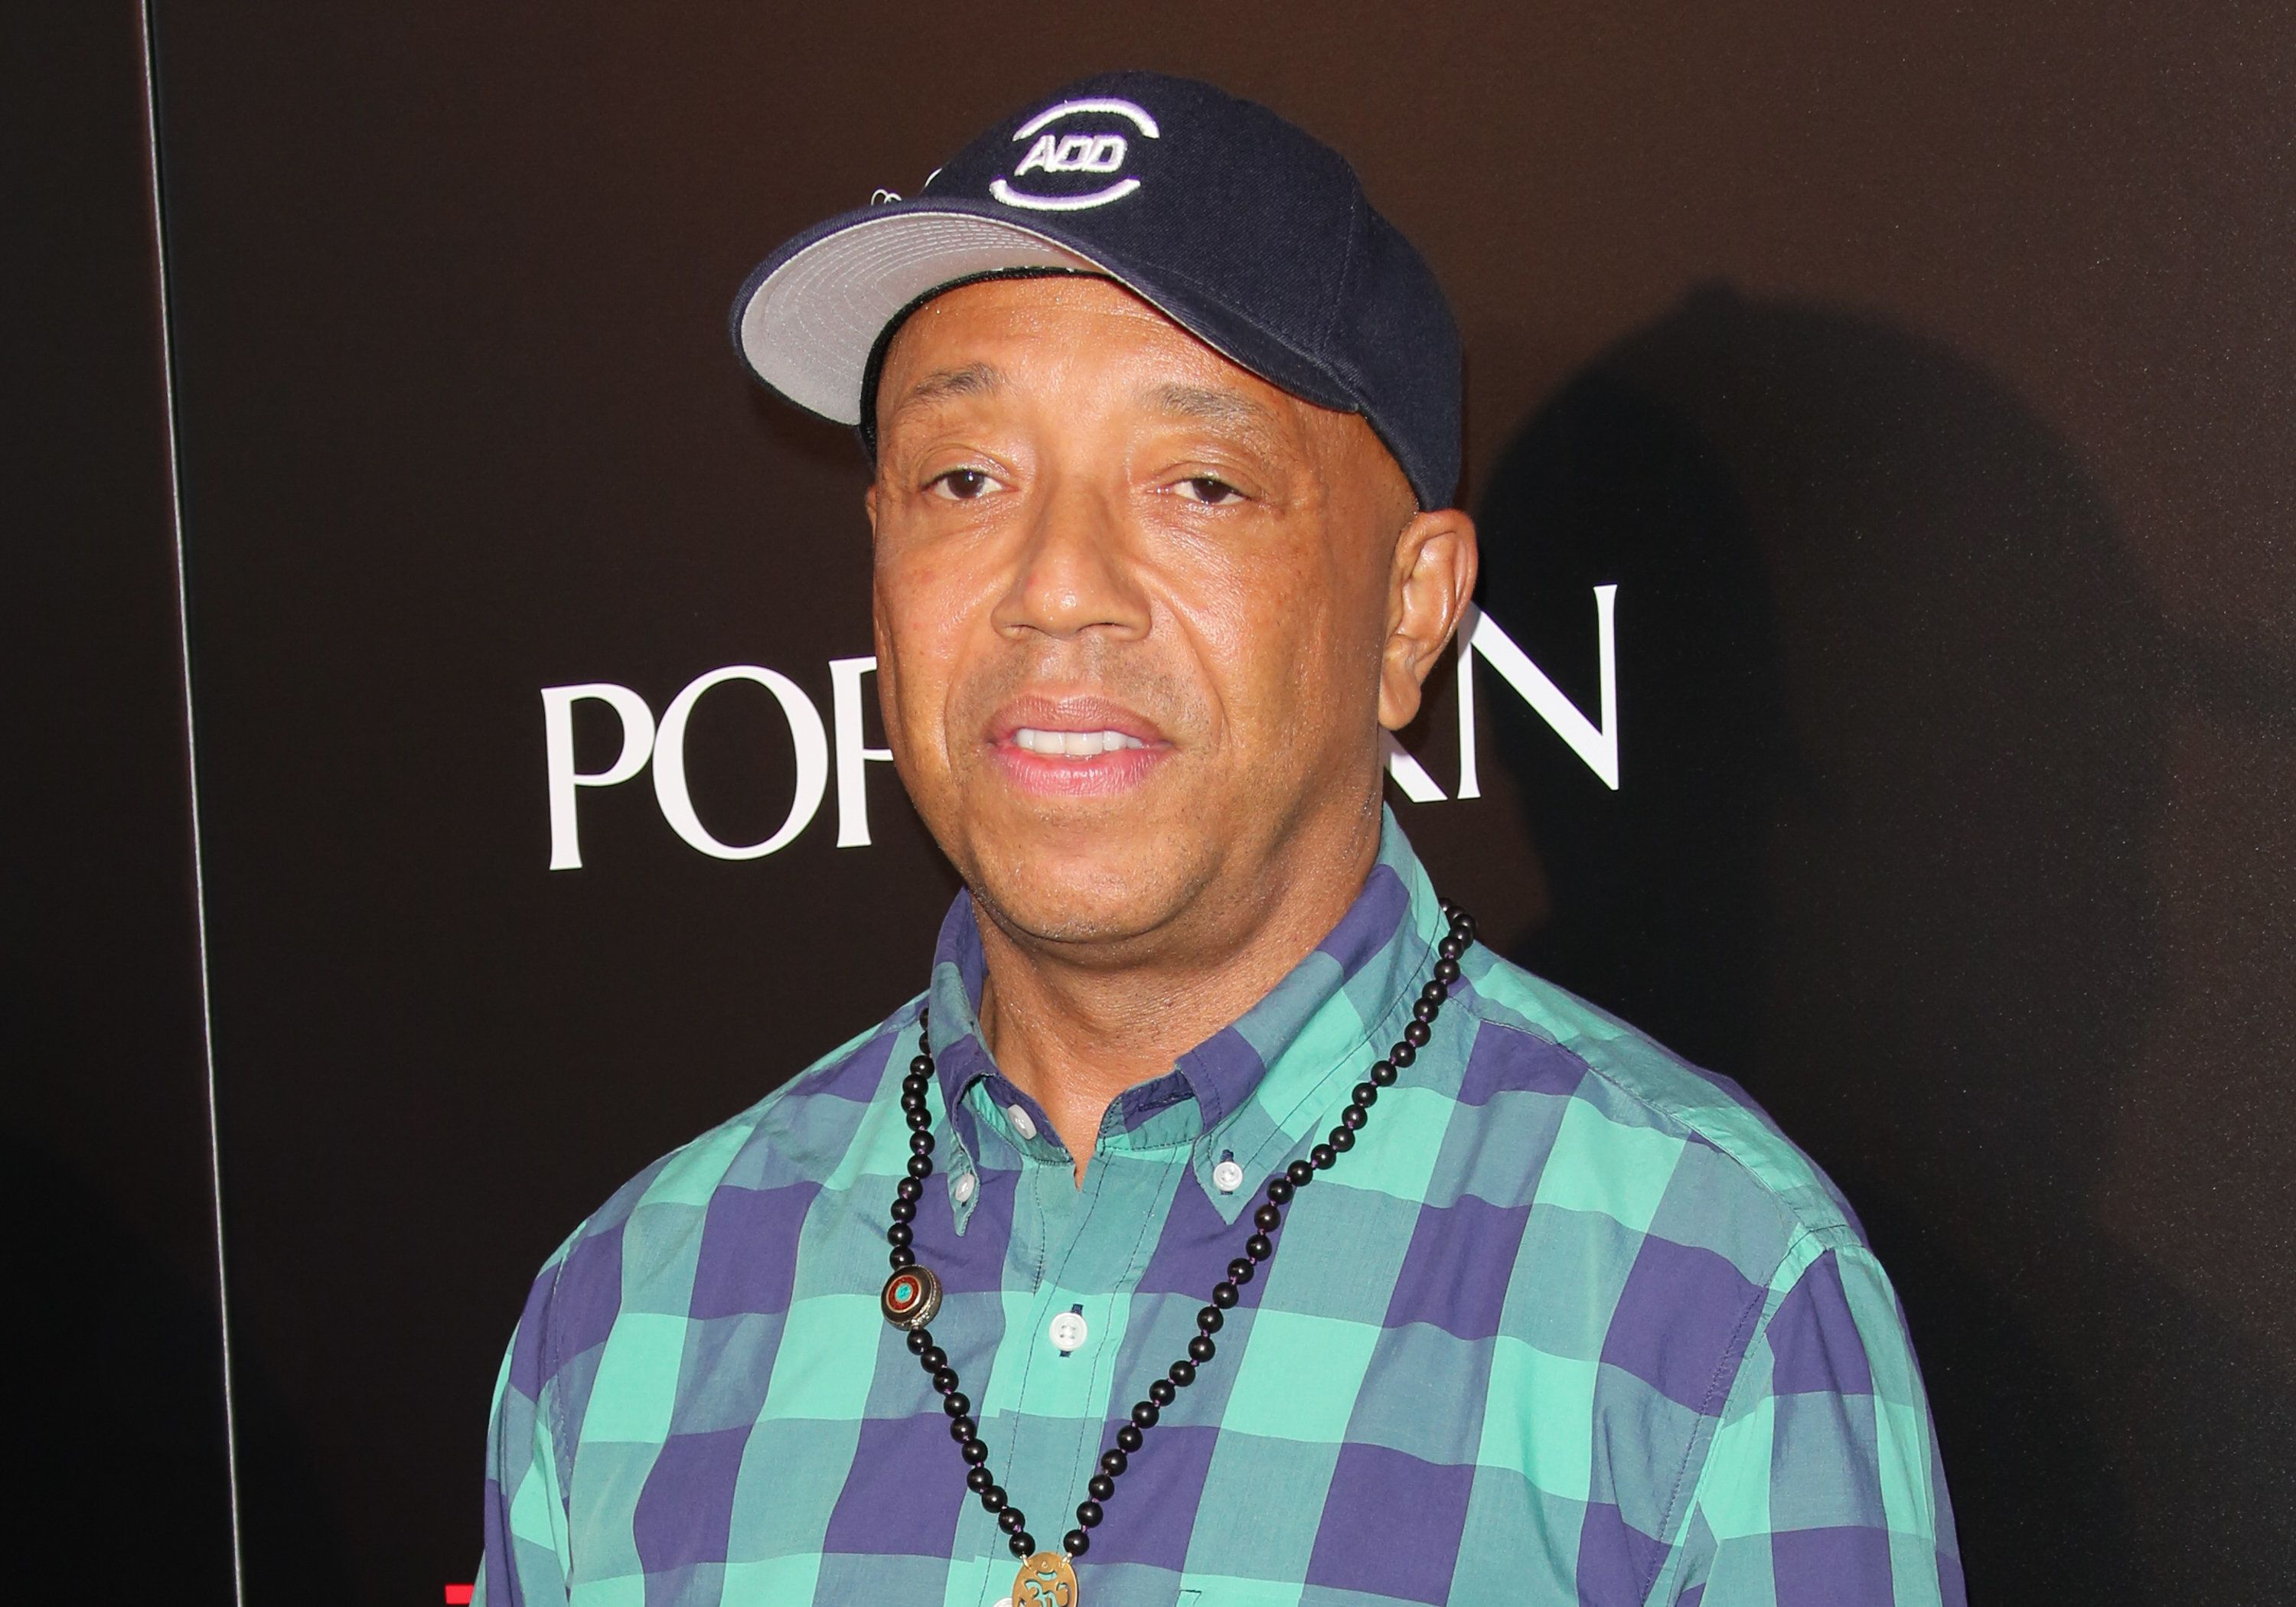 BEVERLY HILLS, CA - SEPTEMBER 02:  Russell Simmons attends the premiere of 'The Perfect Guy' at The WGA Theater on September 2, 2015 in Beverly Hills, California.  (Photo by Paul Archuleta/FilmMagic)